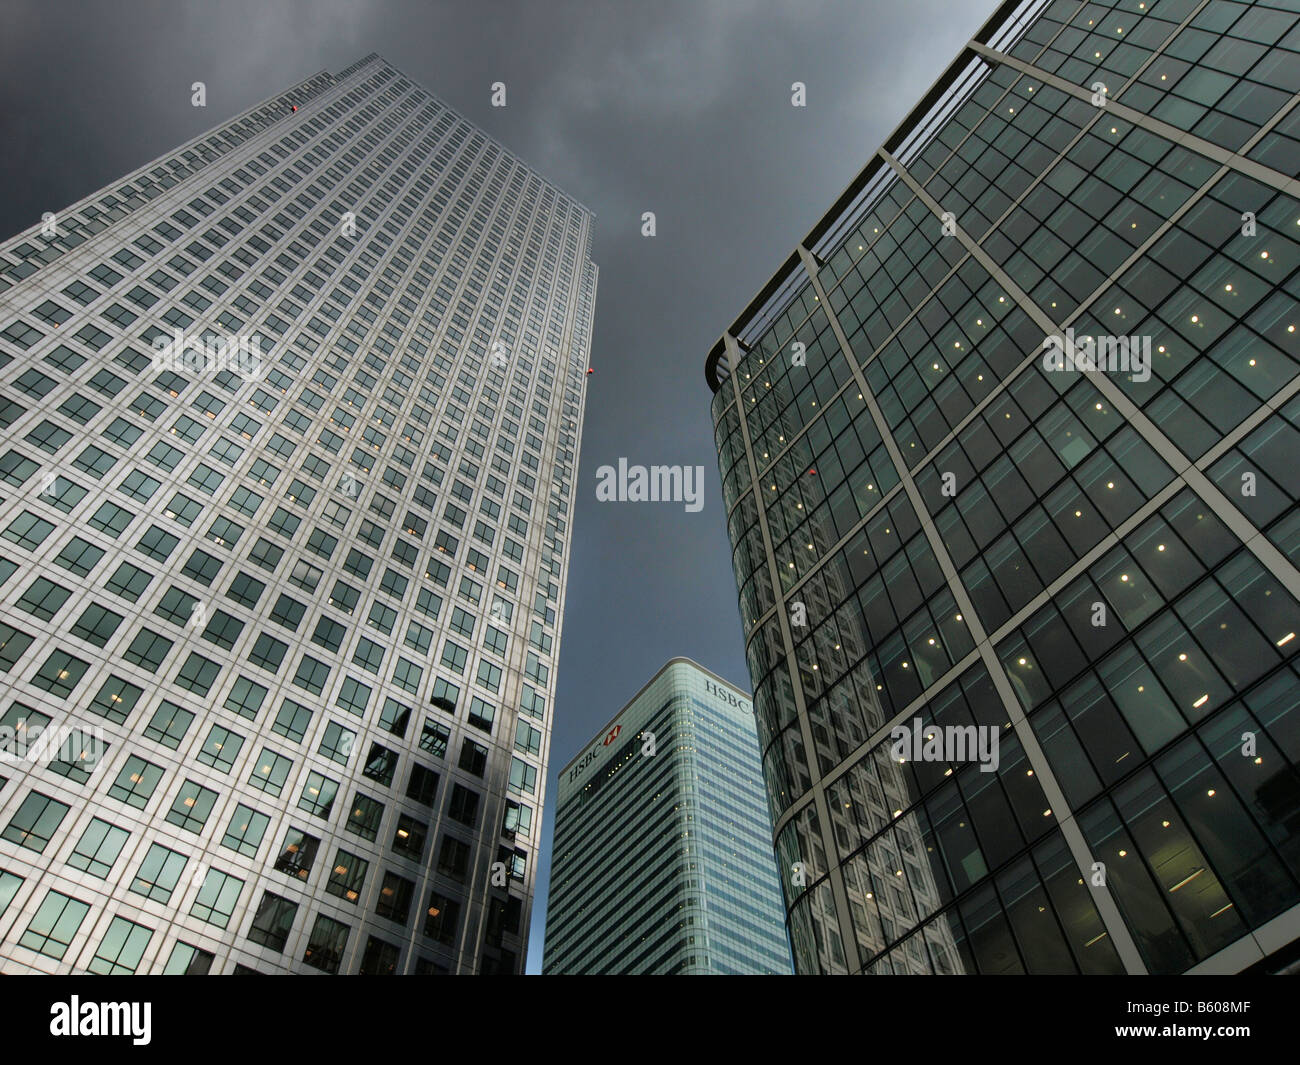 Canary Wharf office towers with HSBC logo Docklands London UK - Stock Image